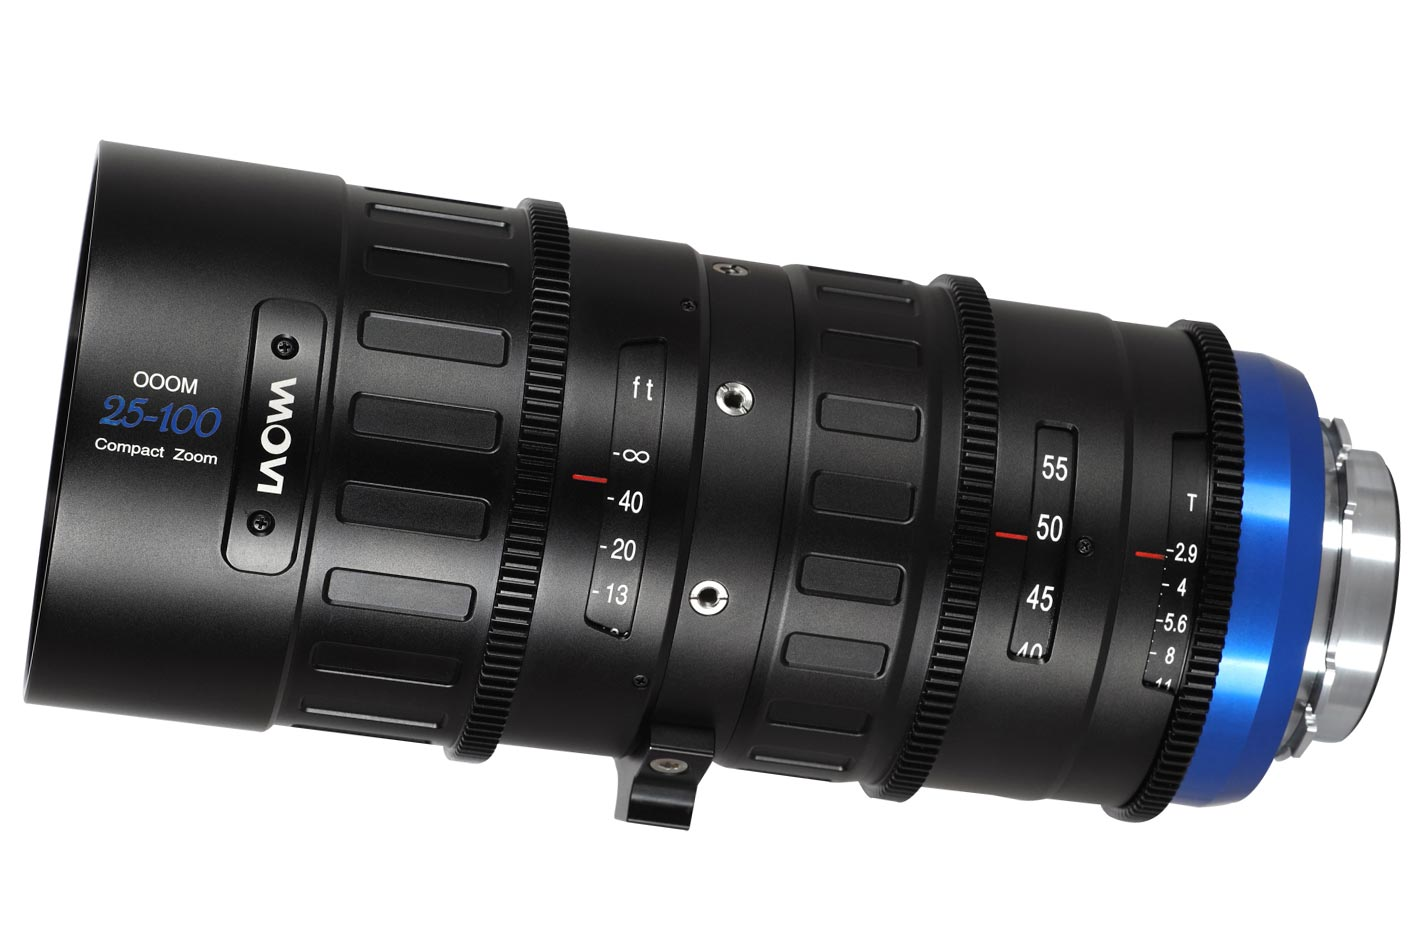 New Laowa OOOM 25-100mm T2.9 Cine lens costs $5,000